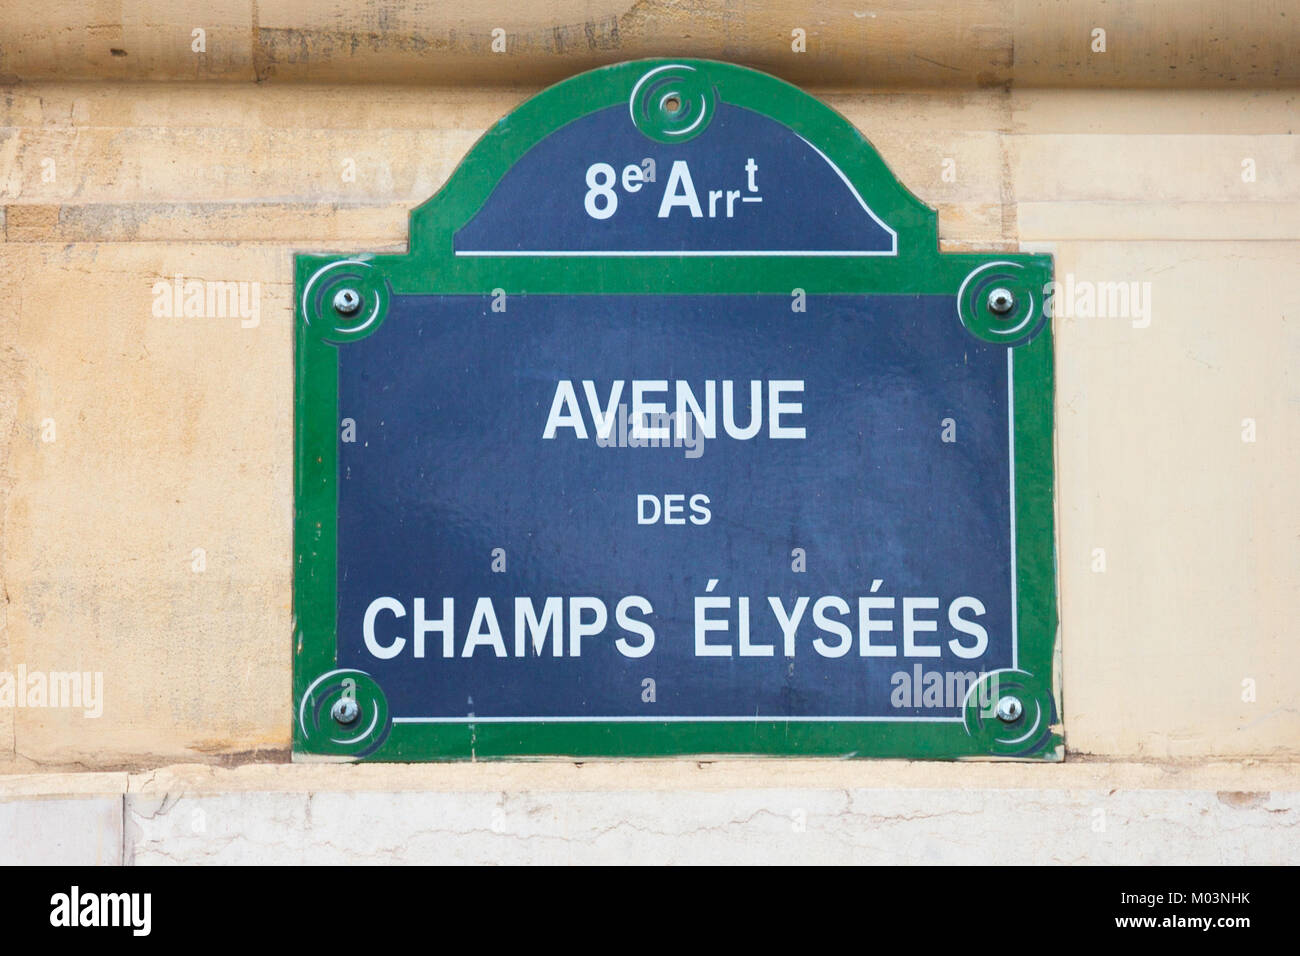 Street sign indicating Champs Elysees Avenue in Paris, France. Champs Elysees, located in western paris, is one - Stock Image